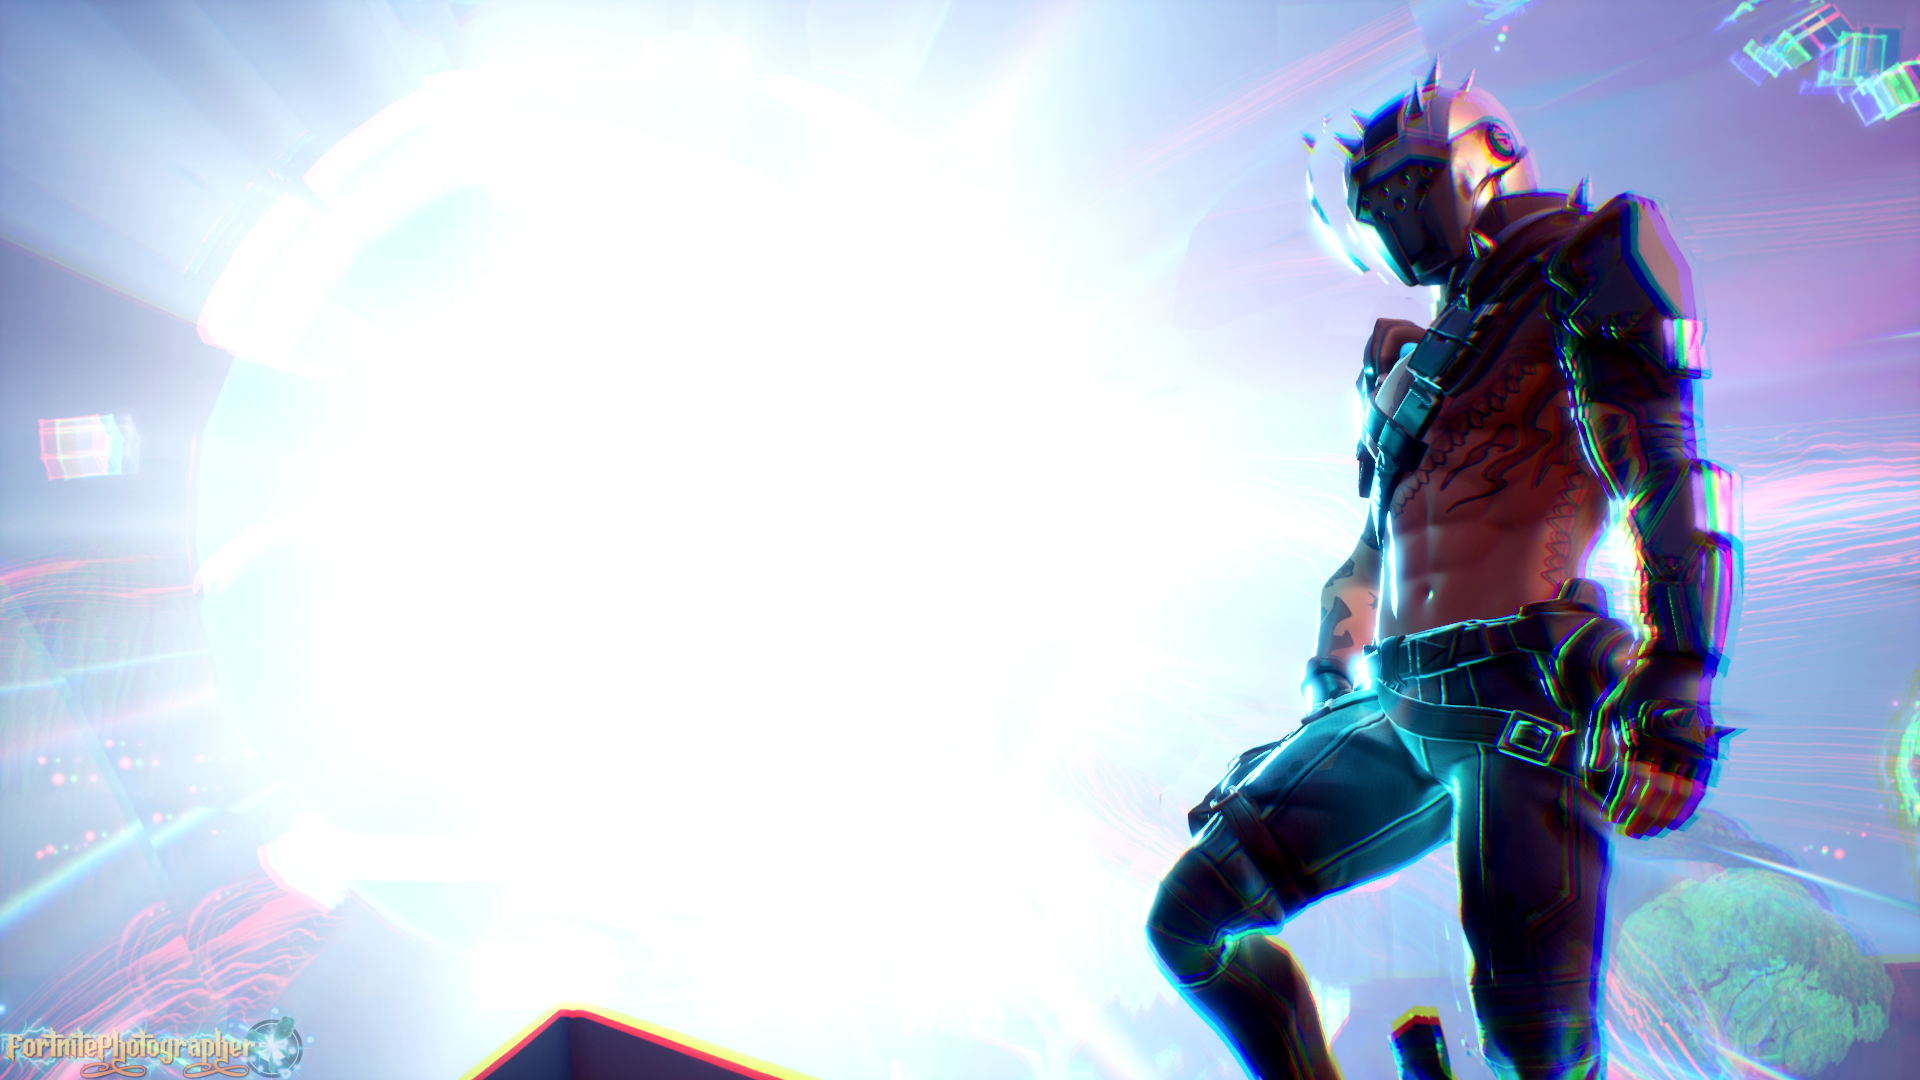 A New Era Some More Shots I Hope You Like Thanks For All The Support And Sharing X Lord Set 01 1 Deadpool Wallpaper Epic Games Fortnite Fortnite